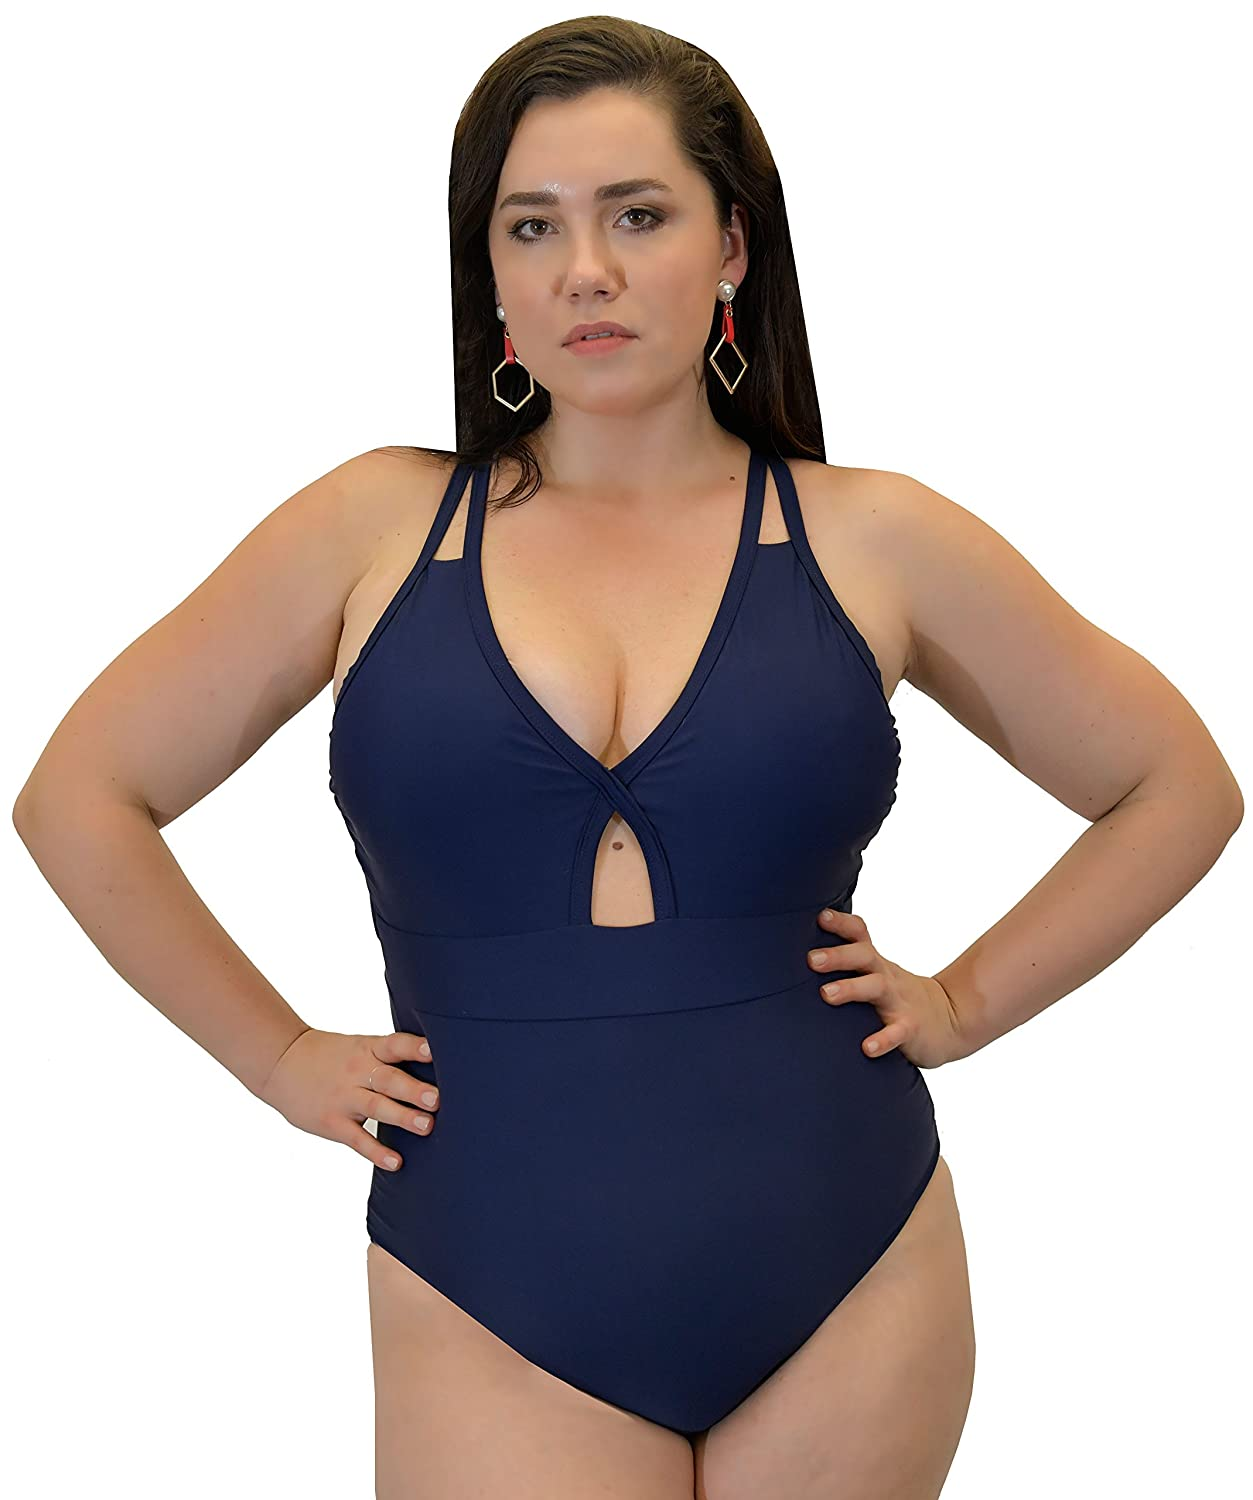 b992e09a05a0d One piece  Who says one-piece bathing suits can t be sexy  Flaunt your  voluptuous curves with a flattering swimsuit that accentuates your full  figure.